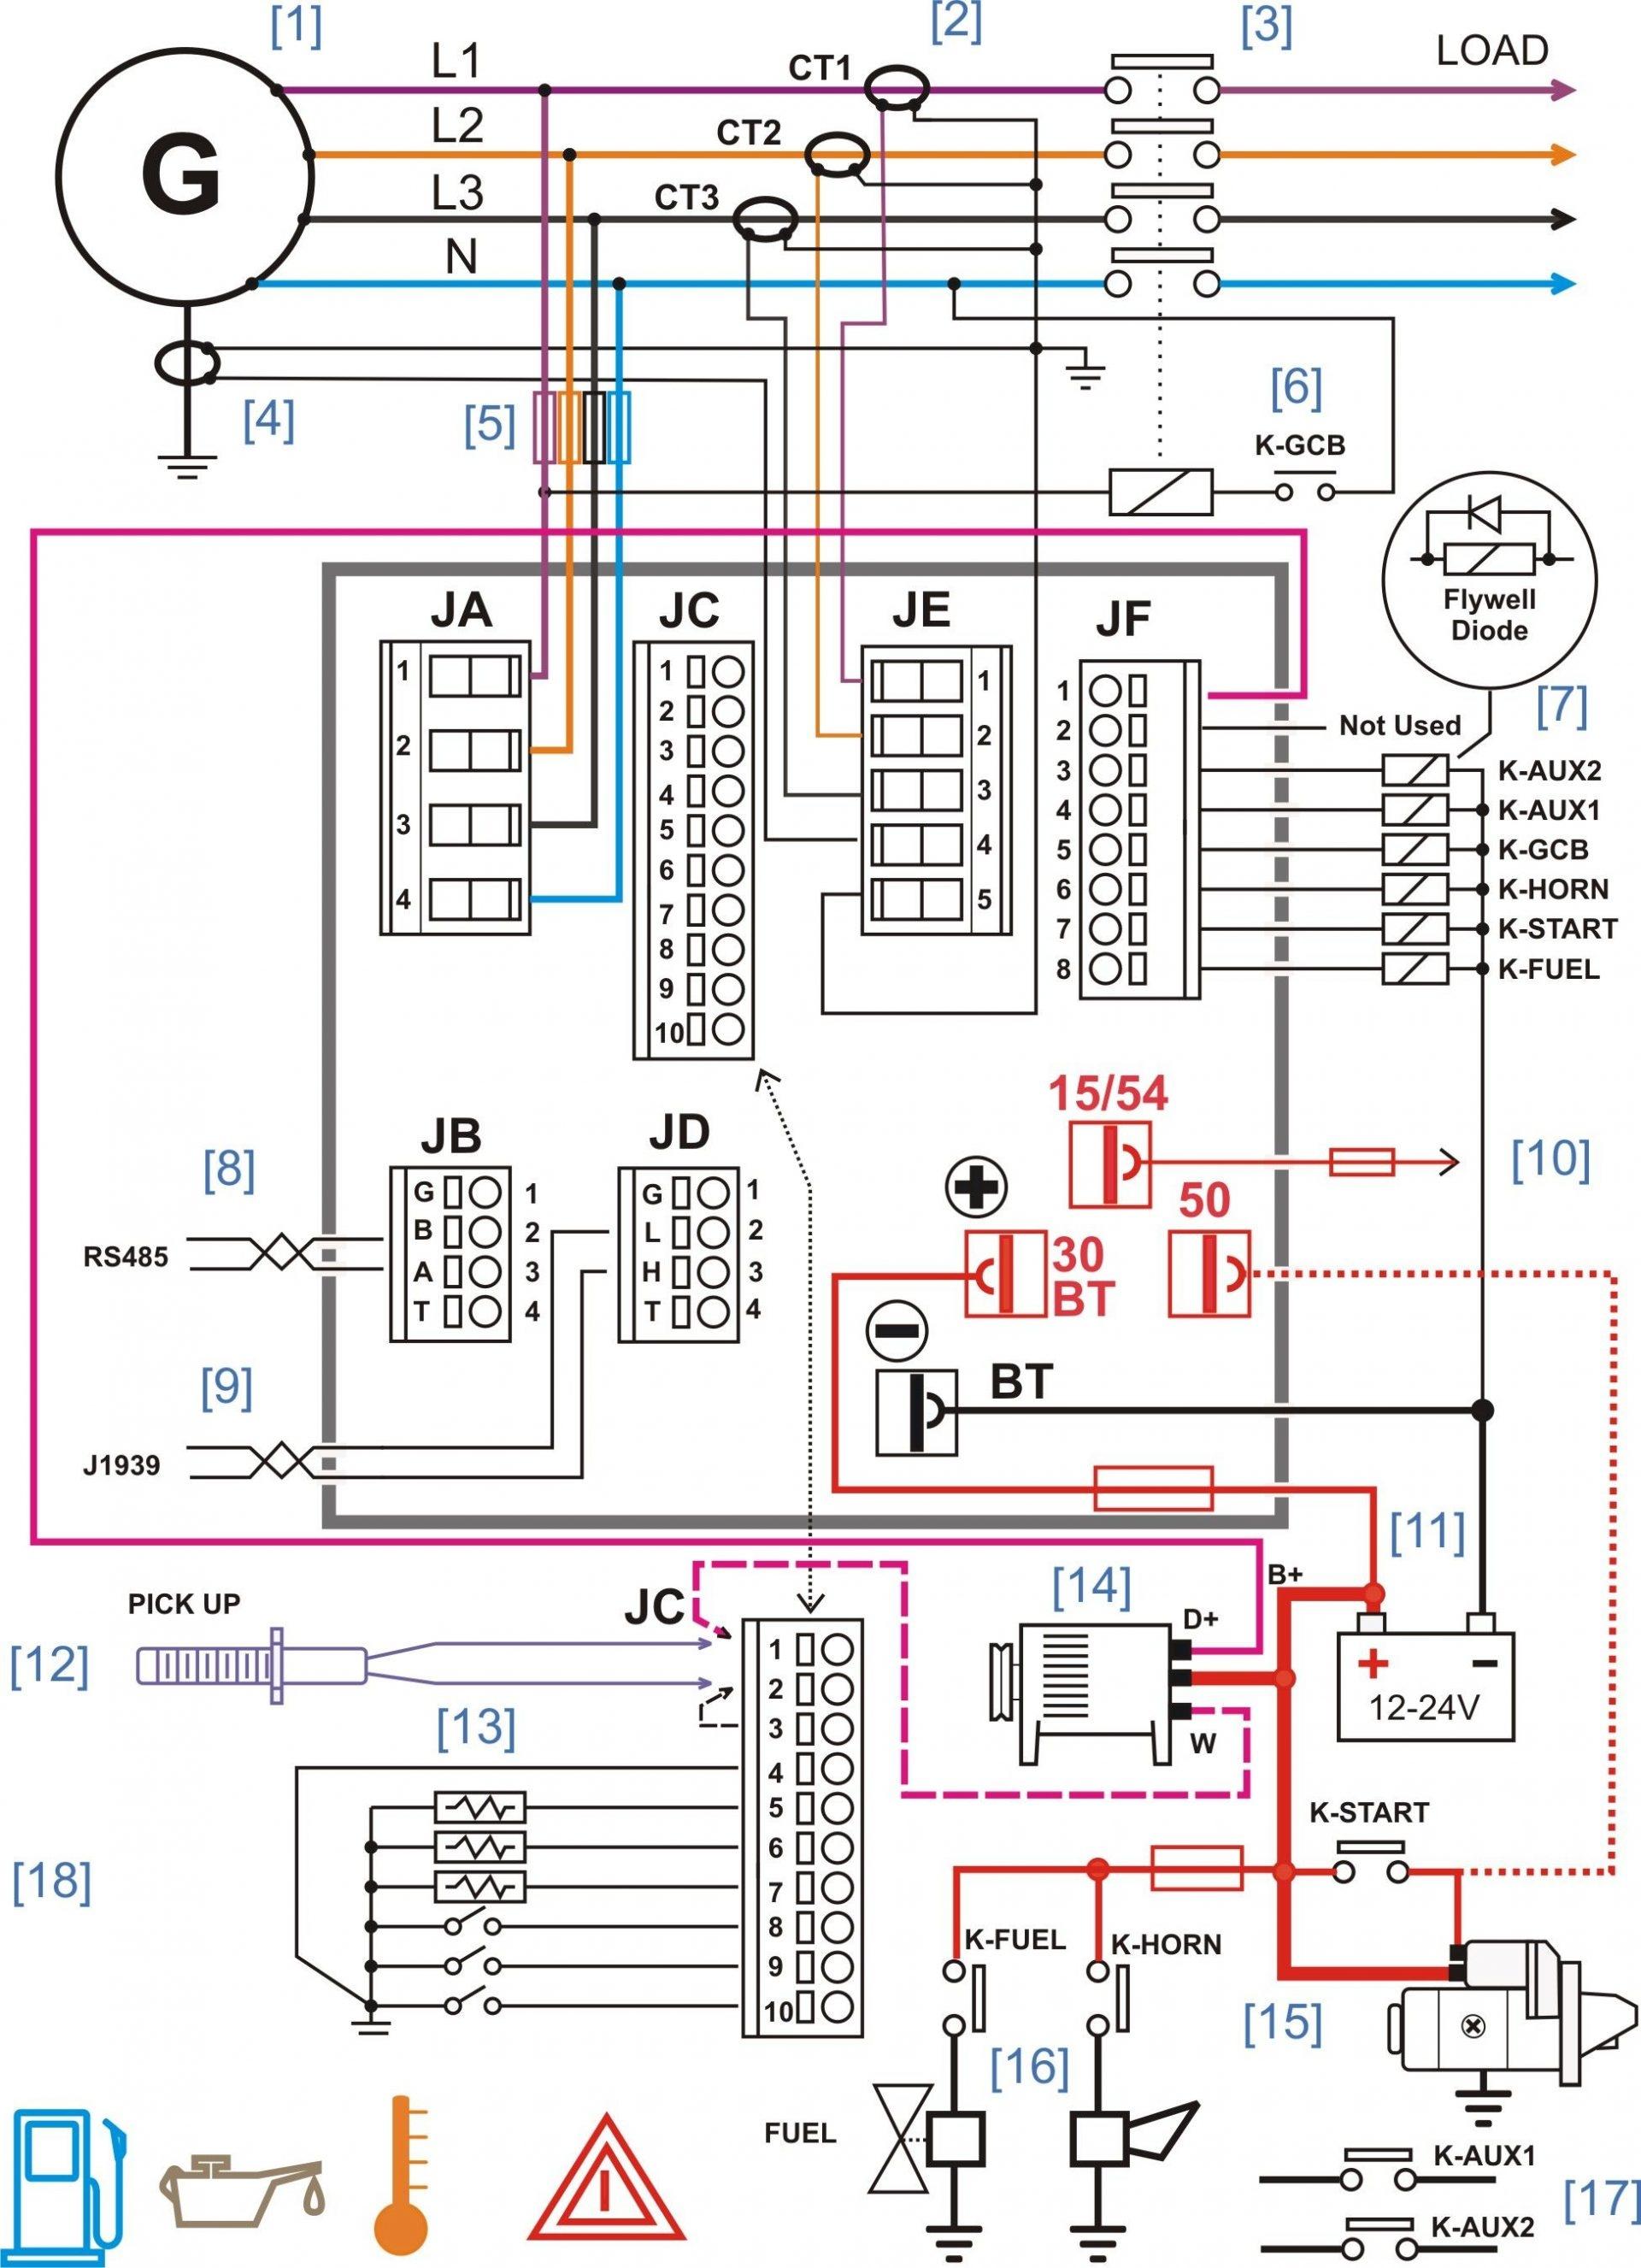 Electrical Control Panel Wiring Diagram Pdf